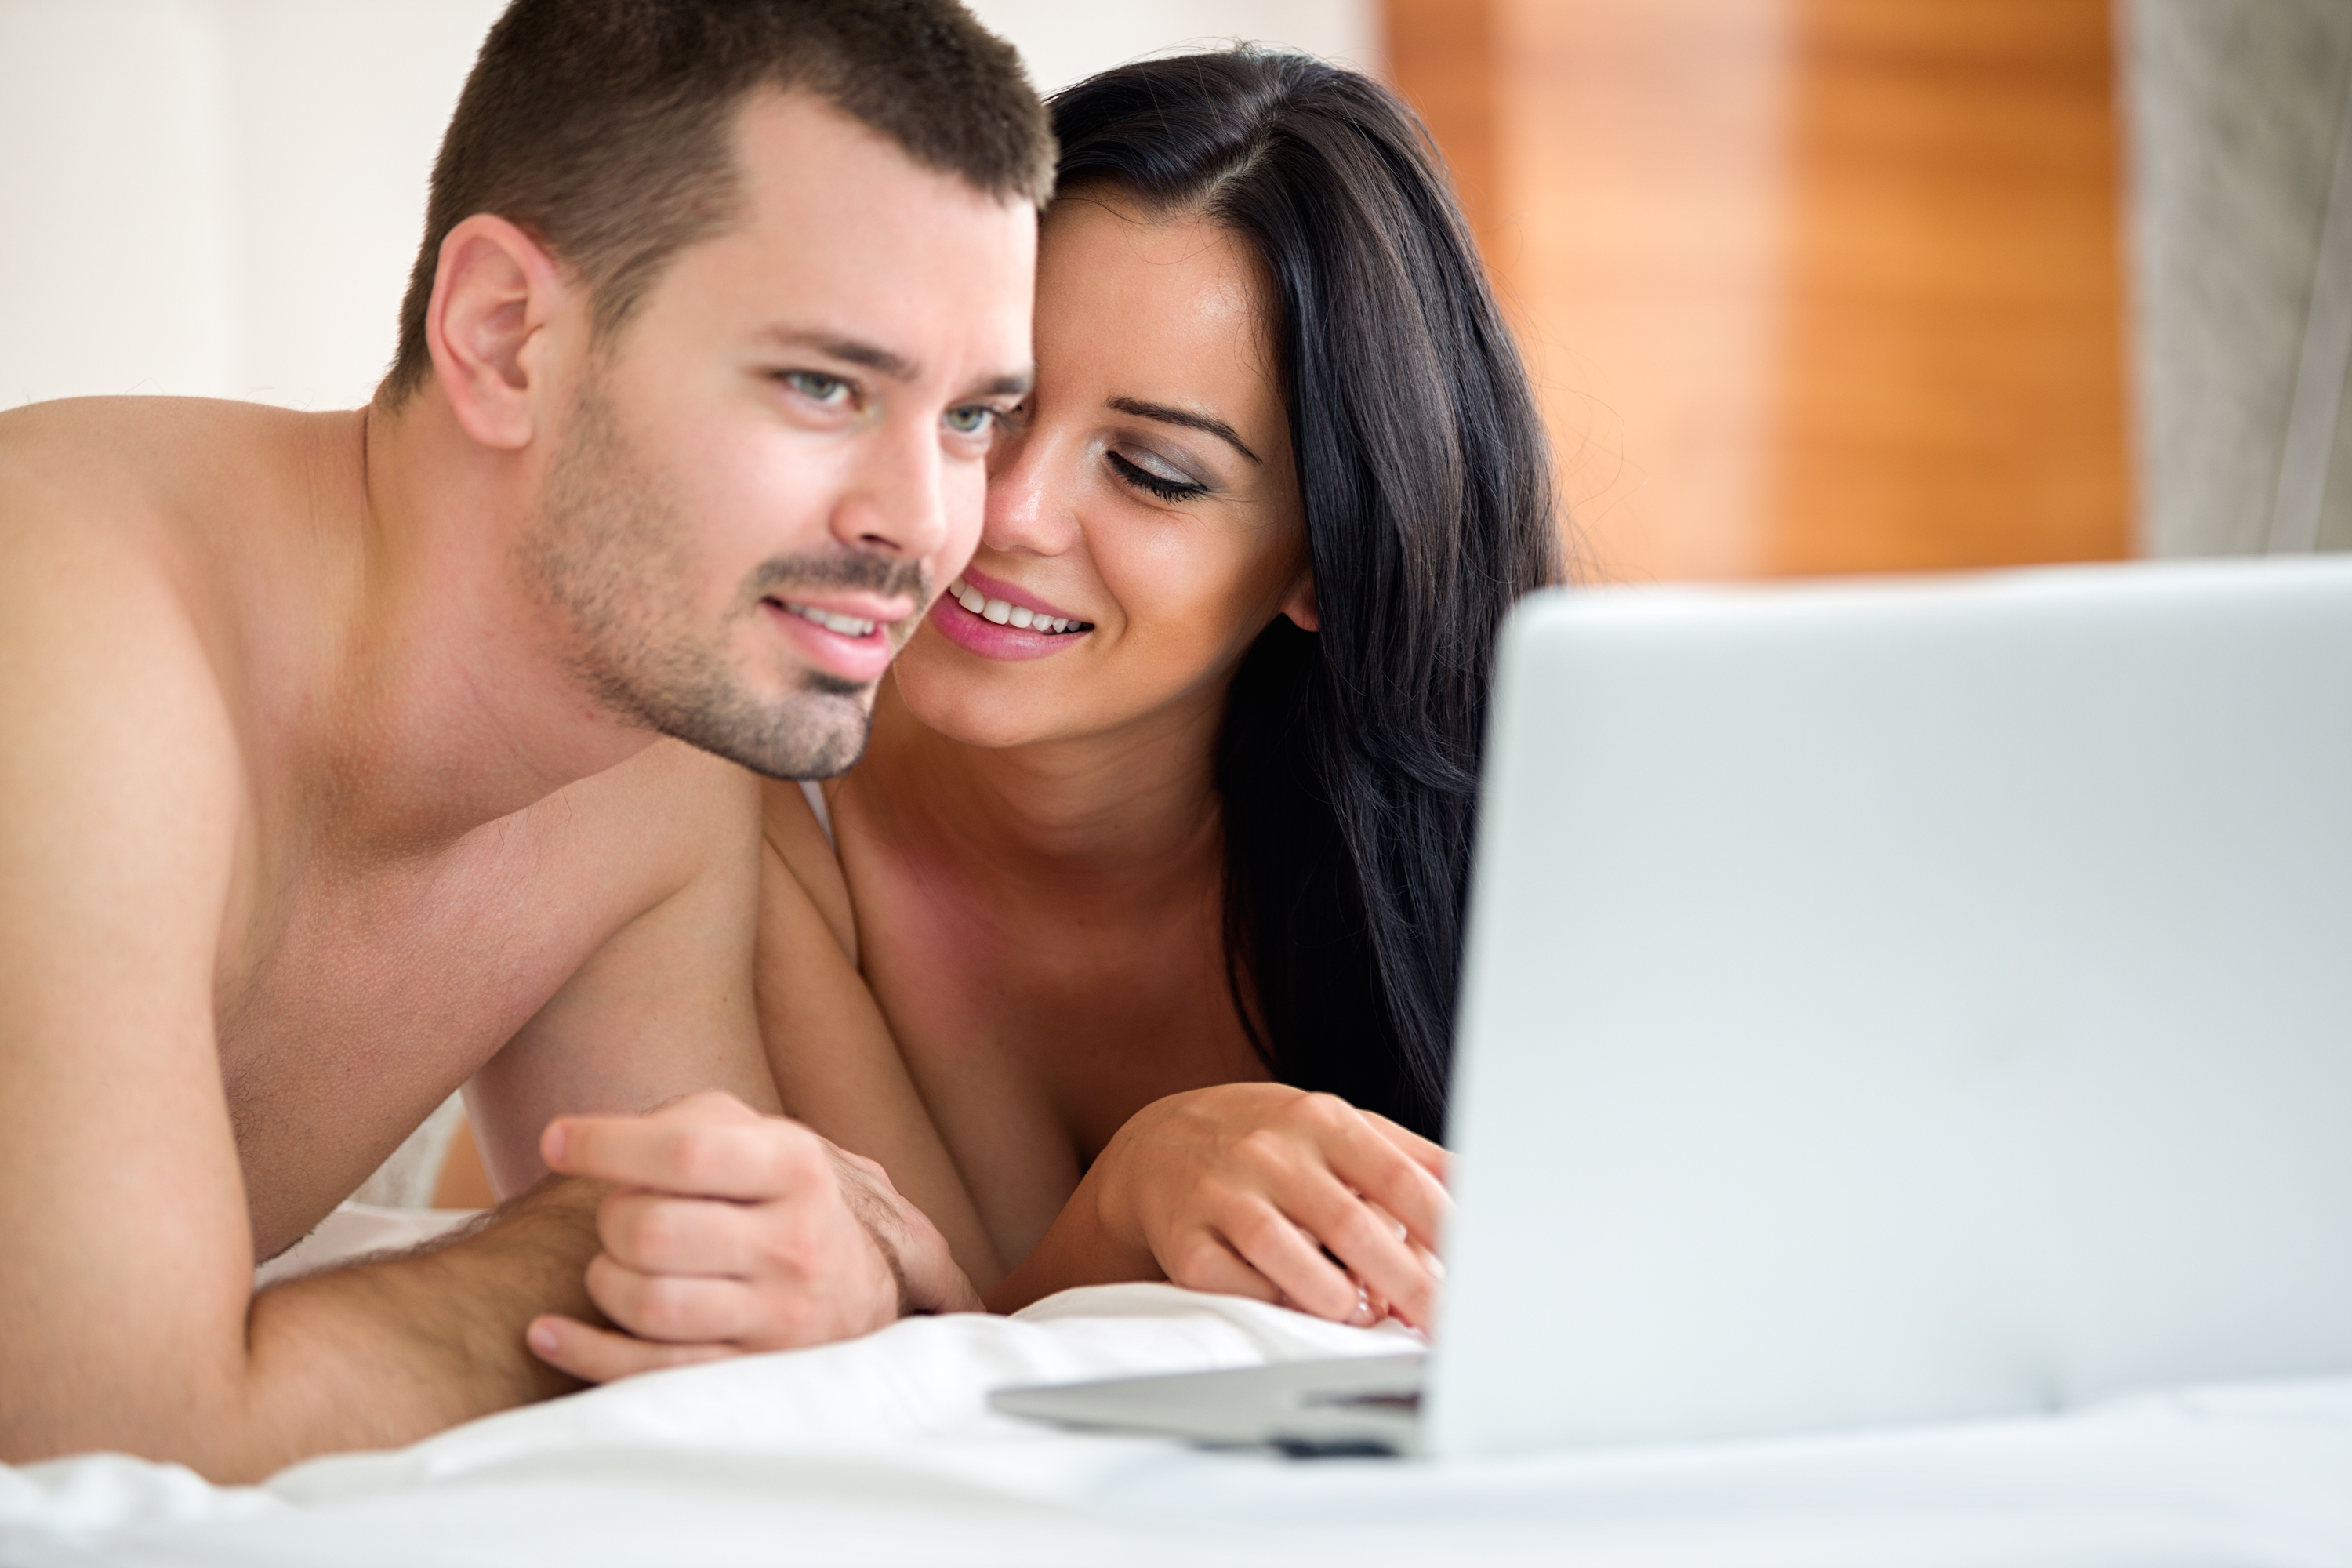 Porn couple together watching